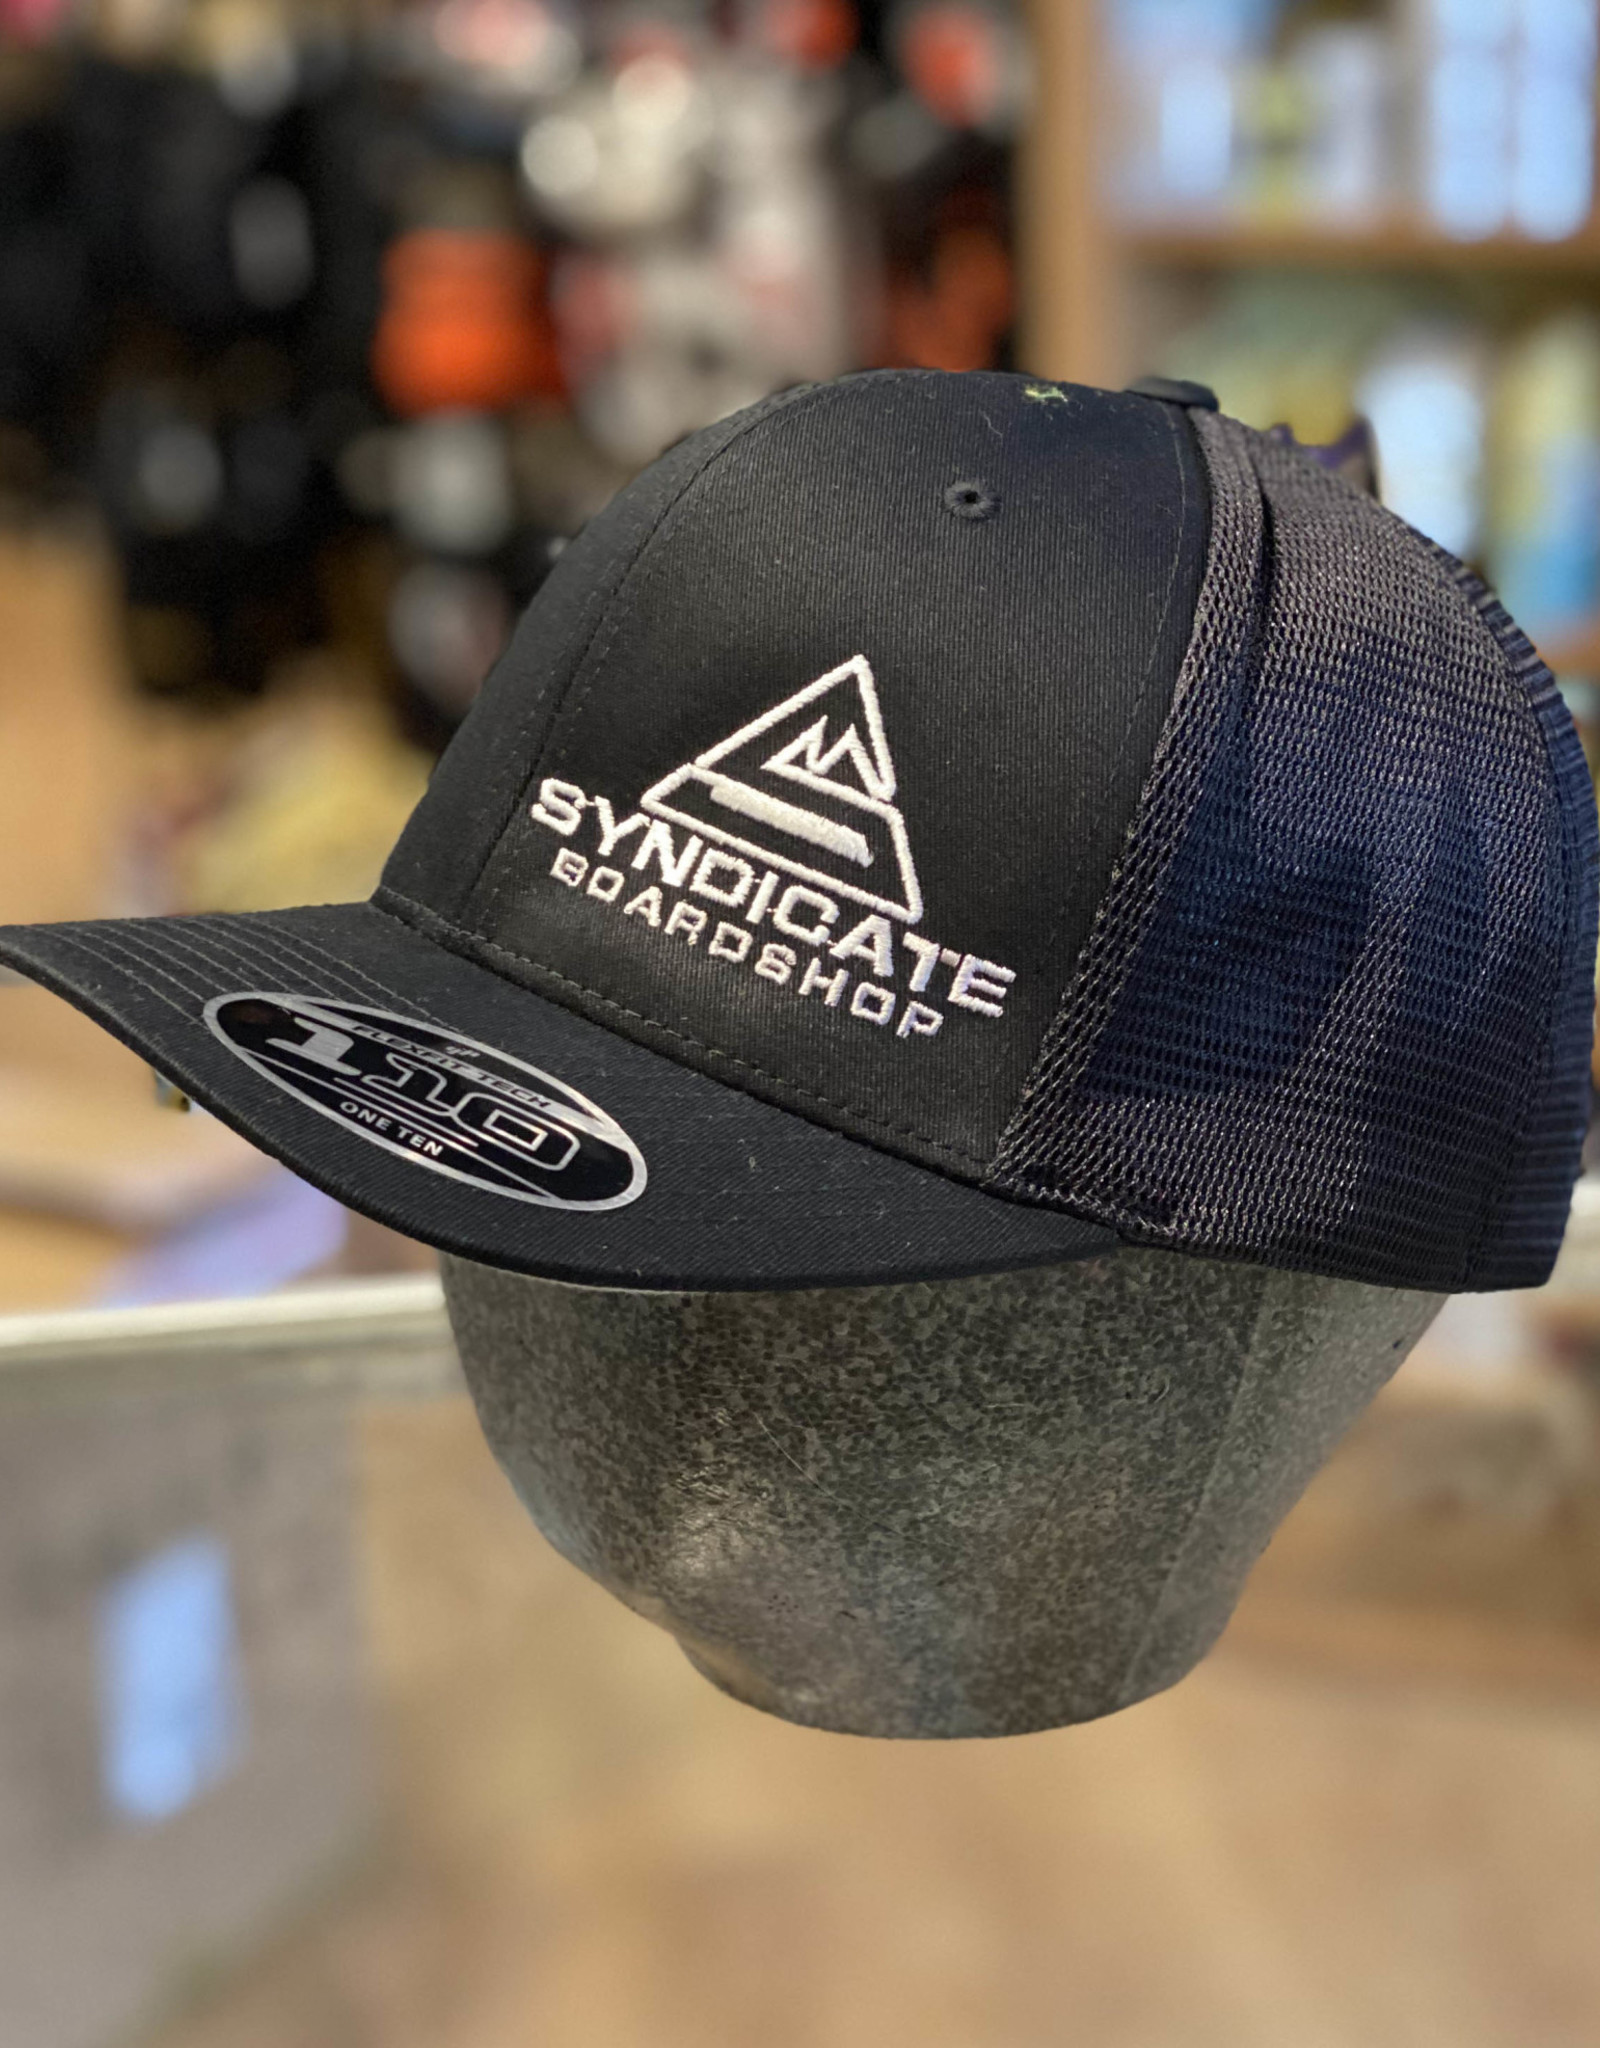 Syndicate Syndicate - MESH SNAPBACK HAT - ASST COLORS -